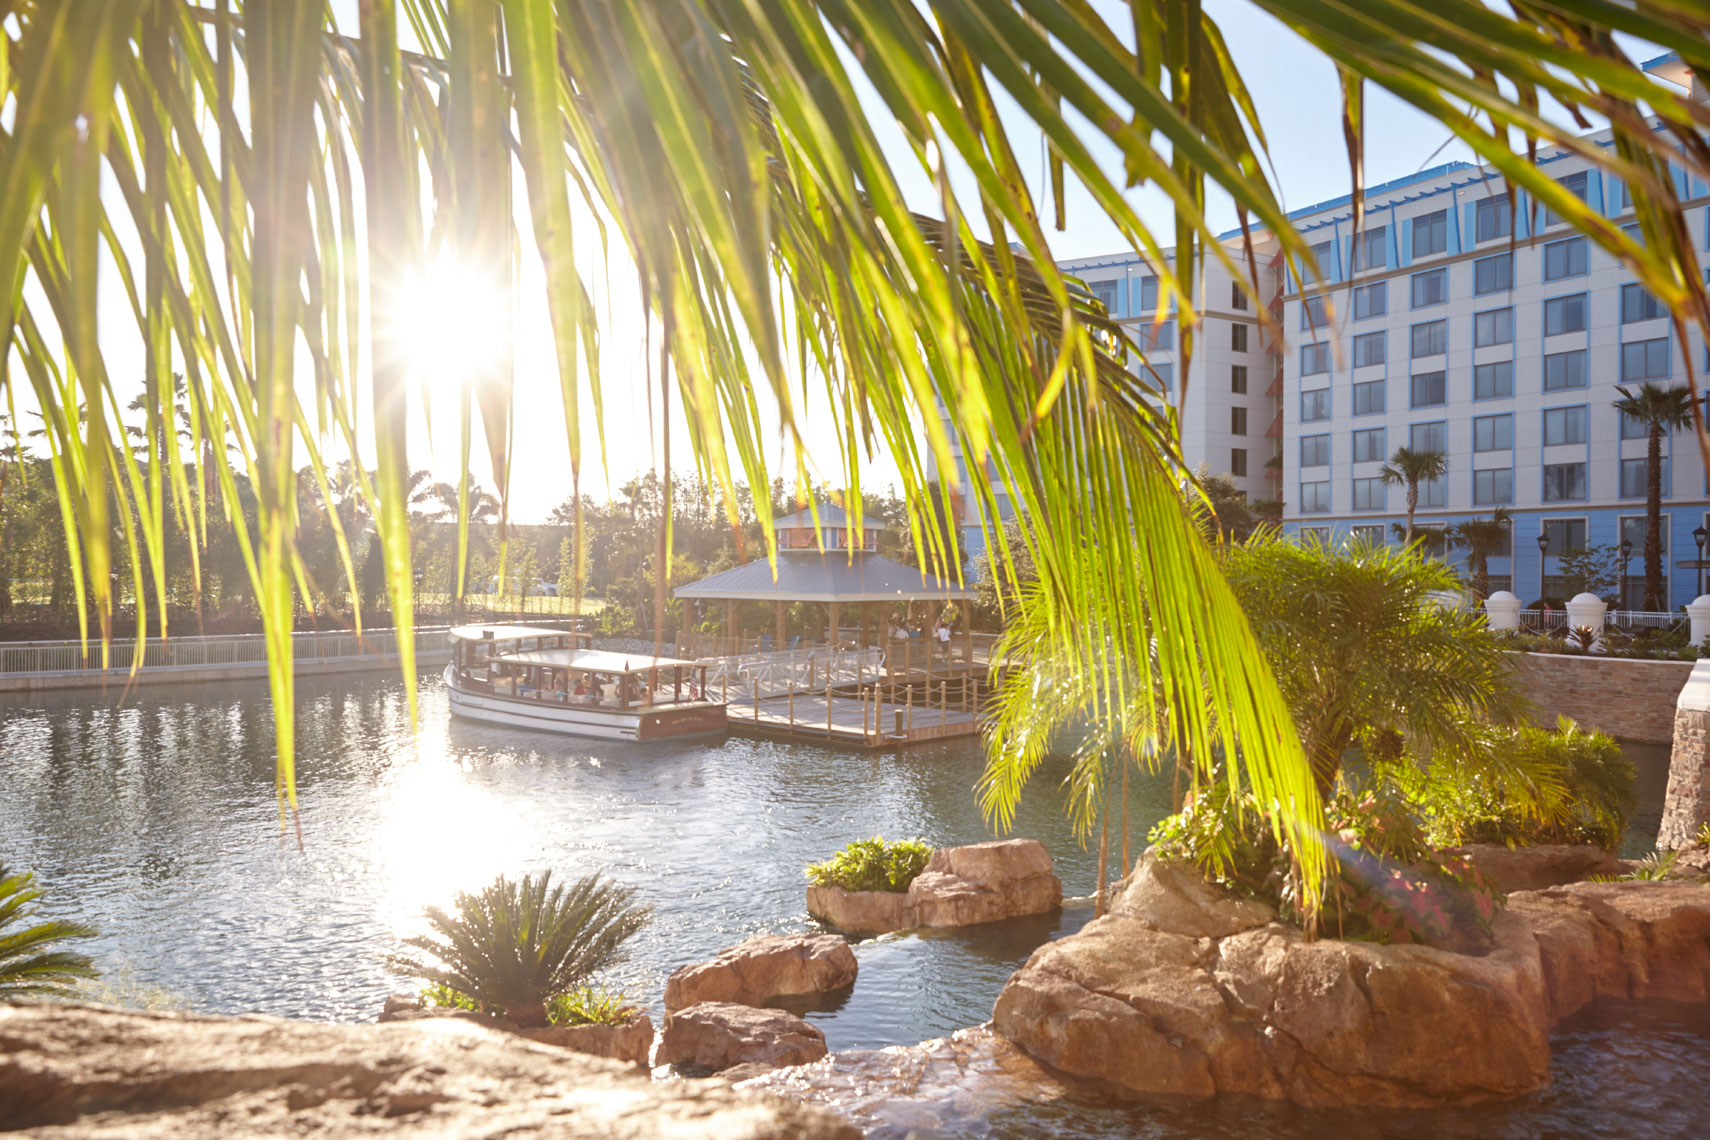 Tropical palm tree fronds framing lagoon with ferry and rocks at resort San Francisco interior photographer